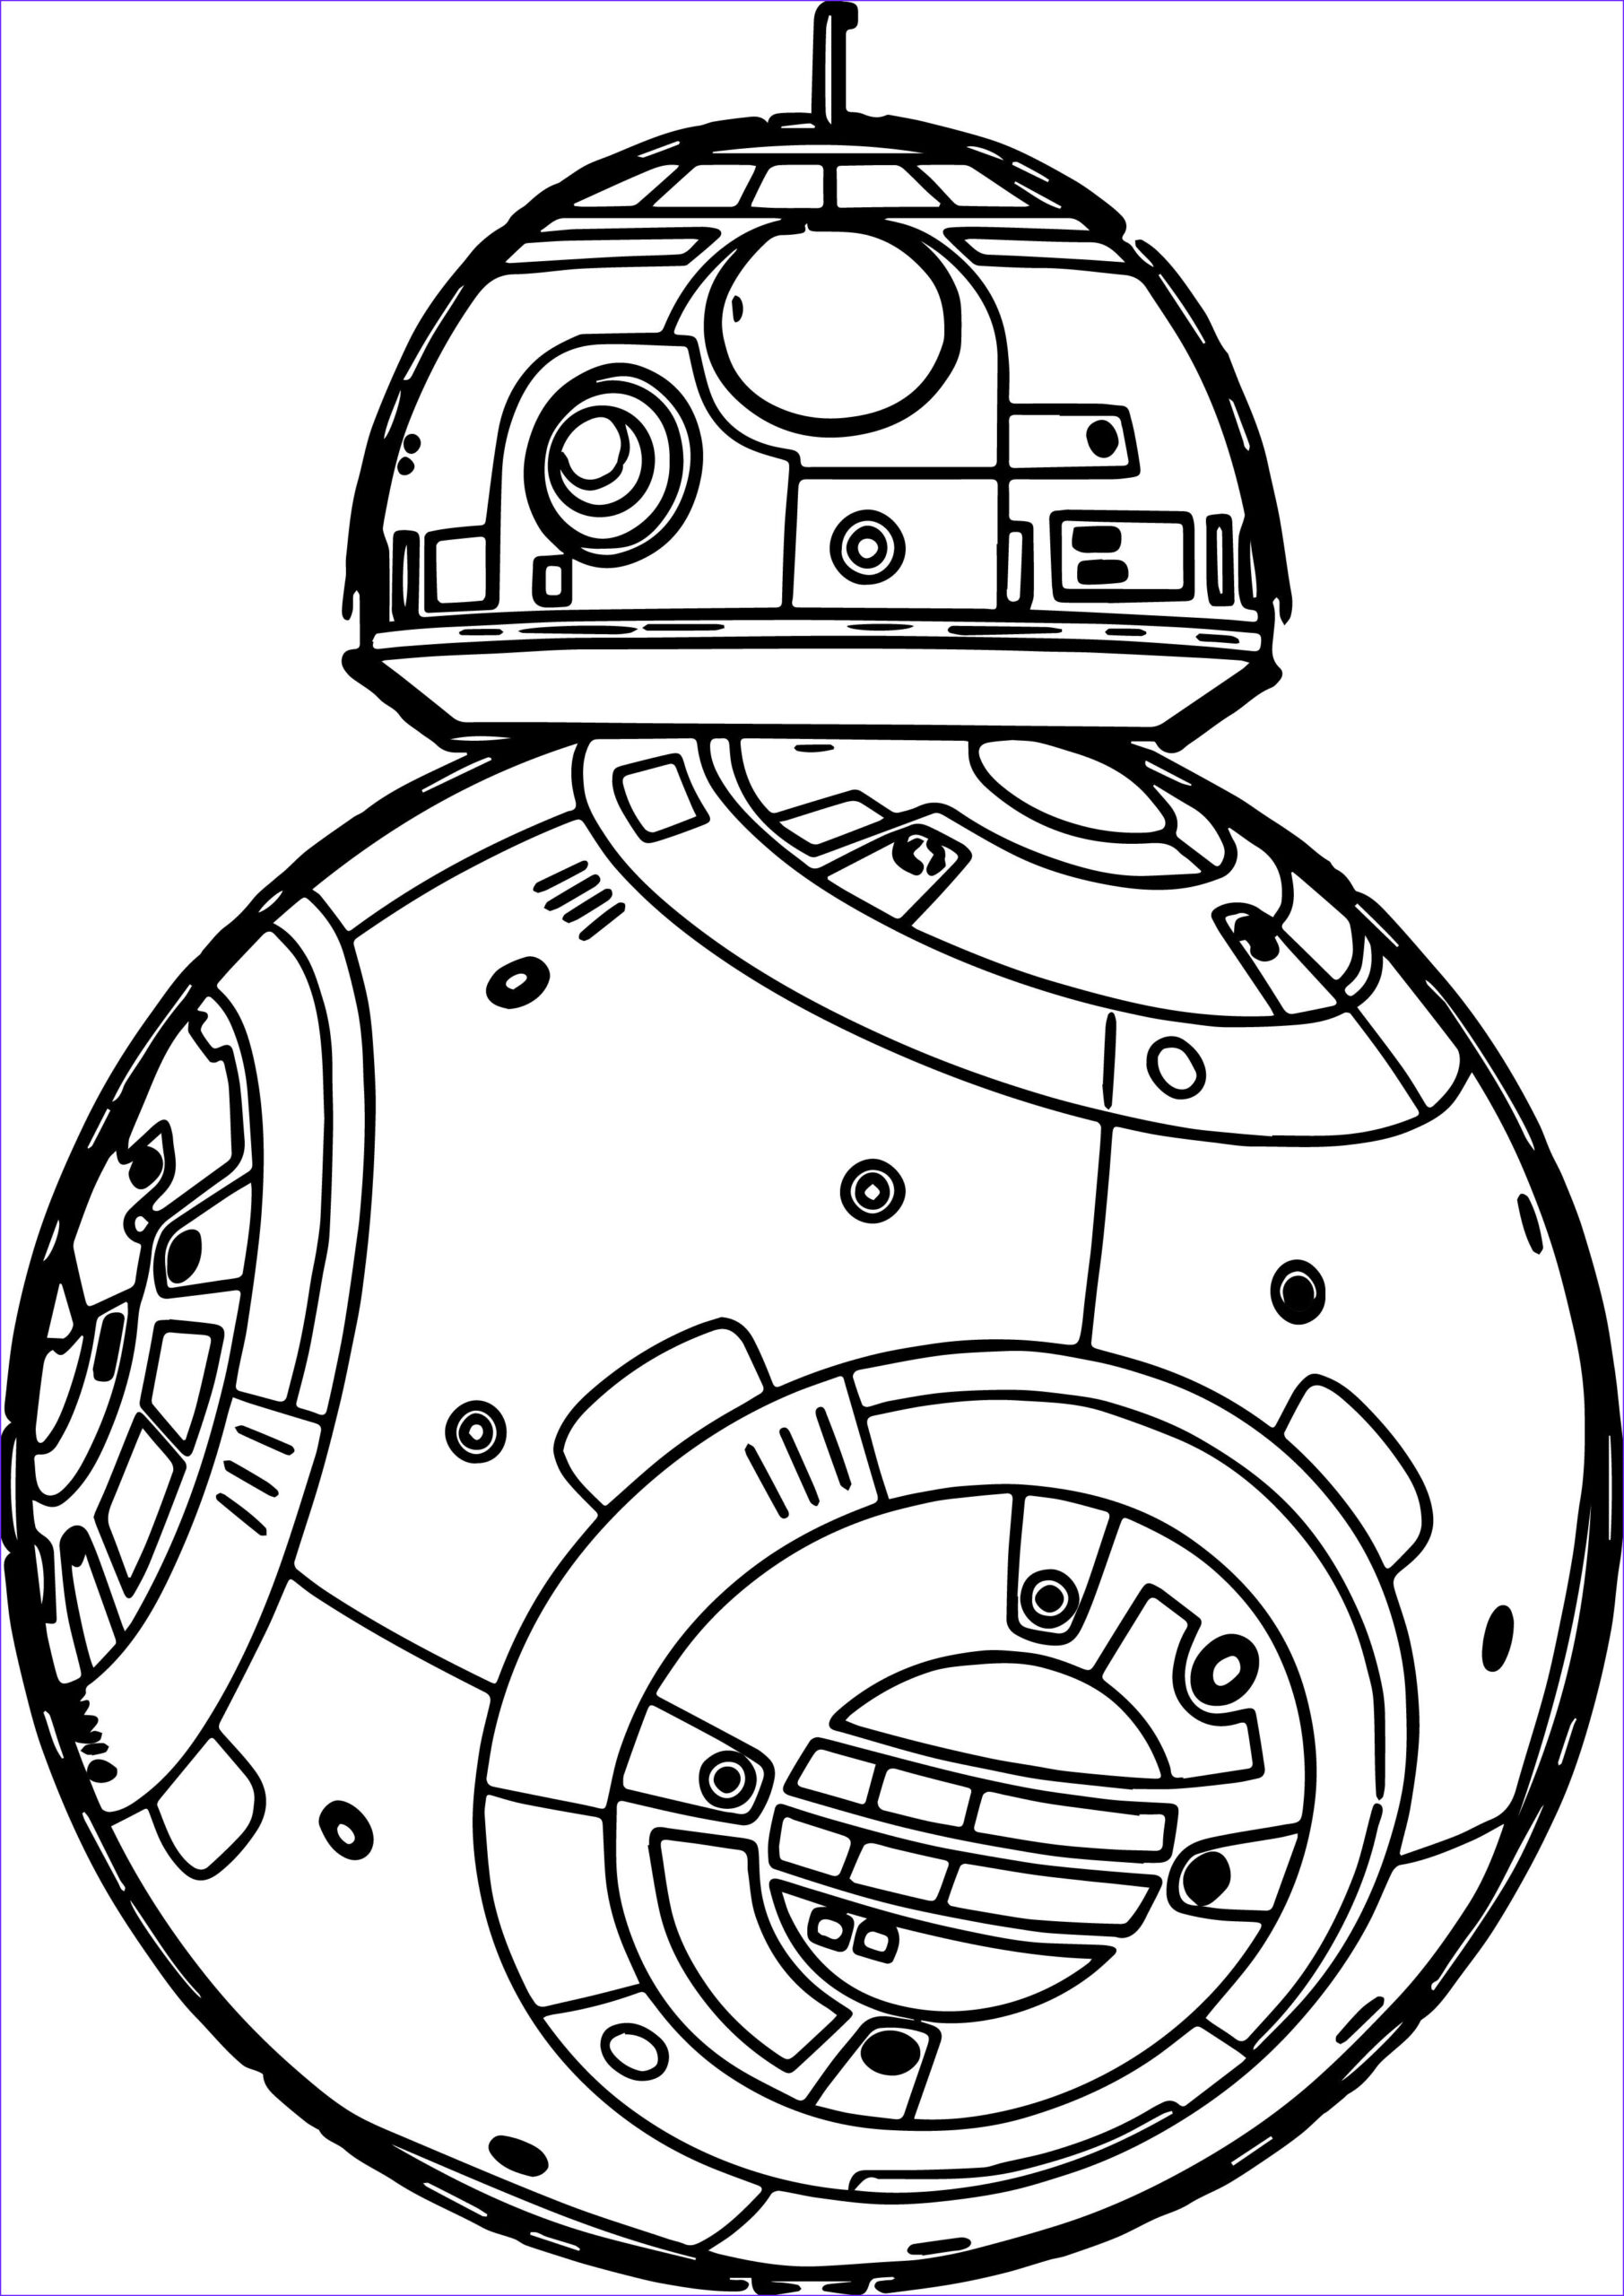 Star Wars Coloring Pages Free Beautiful Photos Star Wars the force Awakens Coloring Pages